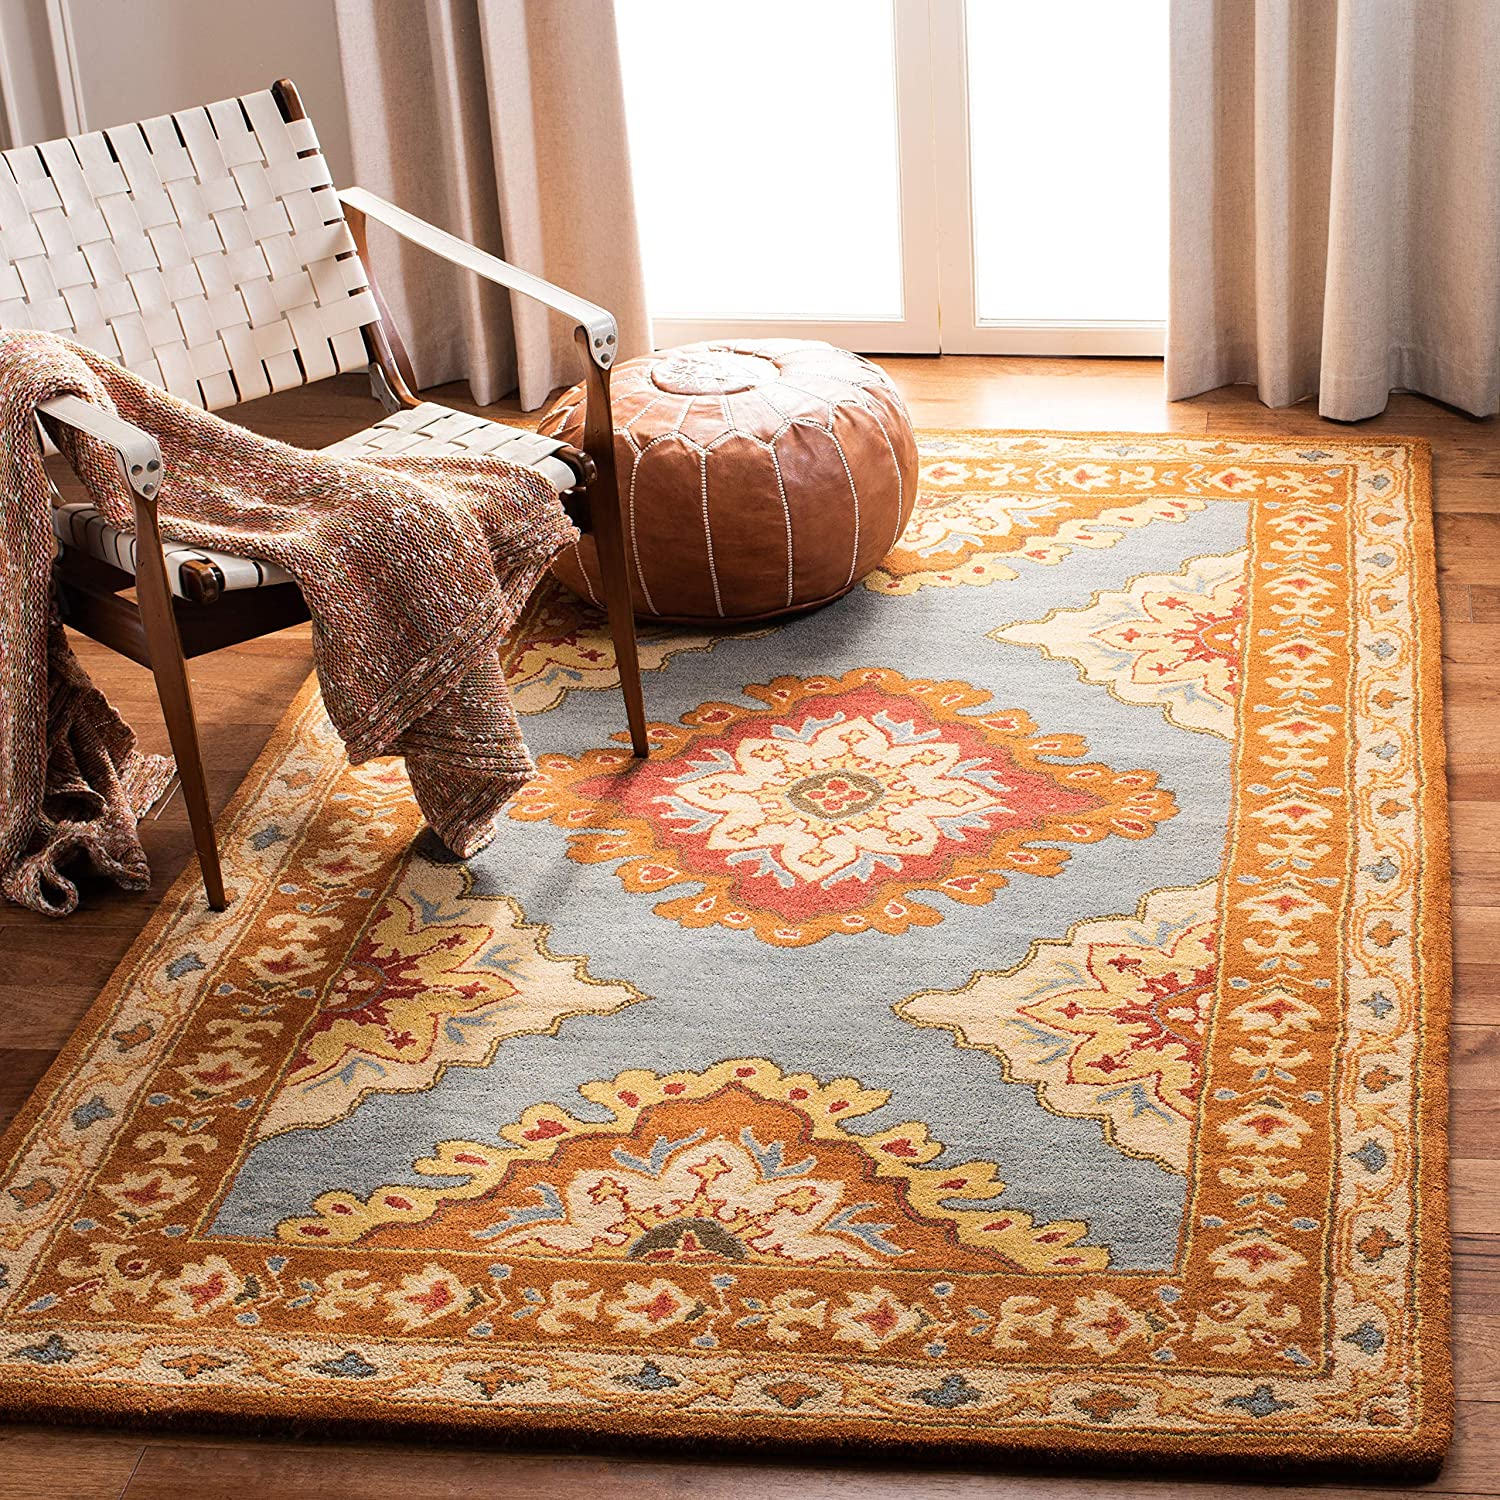 Sales results No. 1 Safavieh Heritage Collection Direct sale of manufacturer HG408A Handmade Orienta Traditional